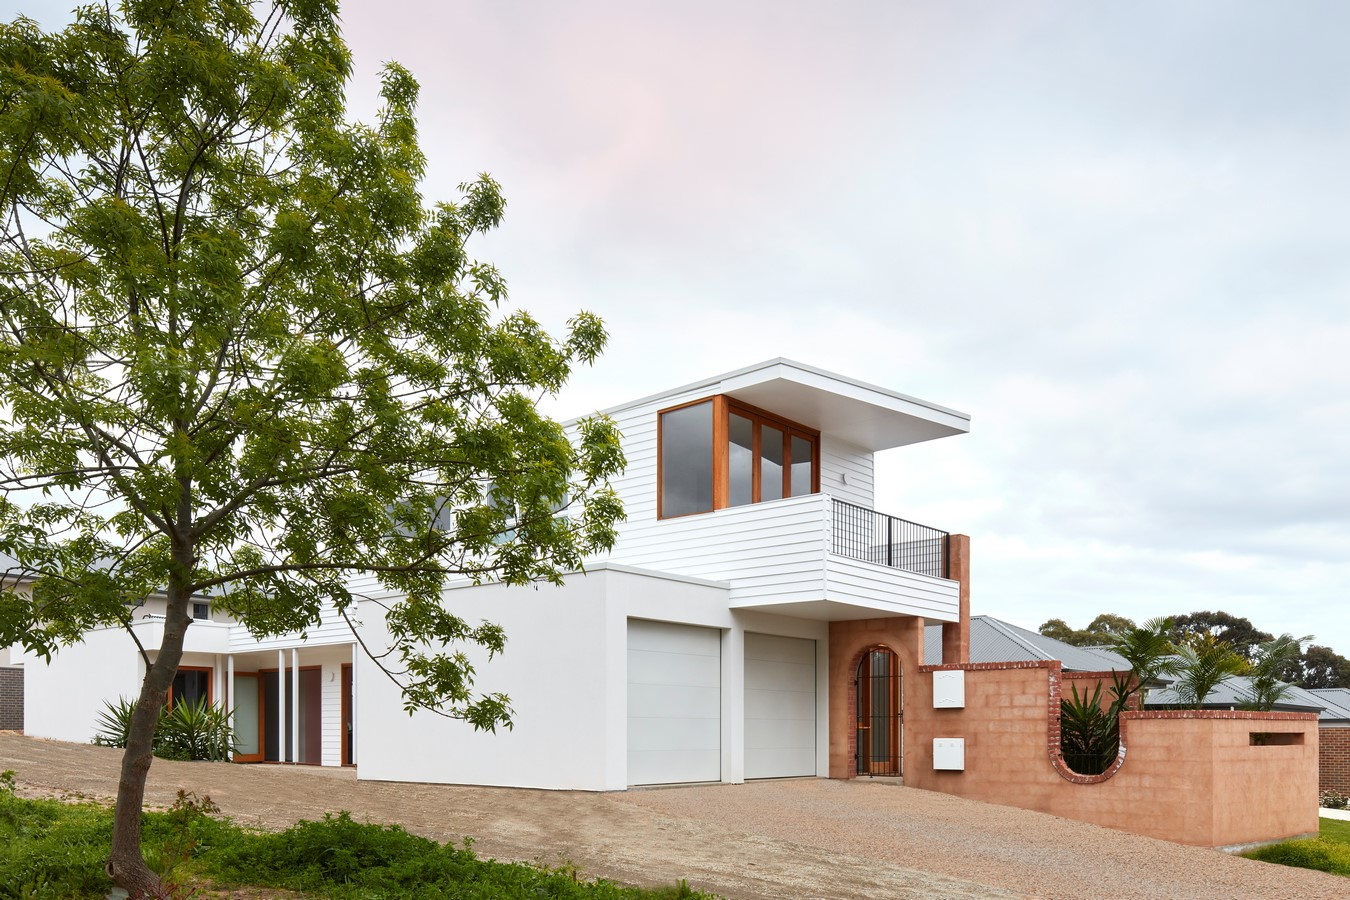 SKY By Ply Architecture - Sheet1